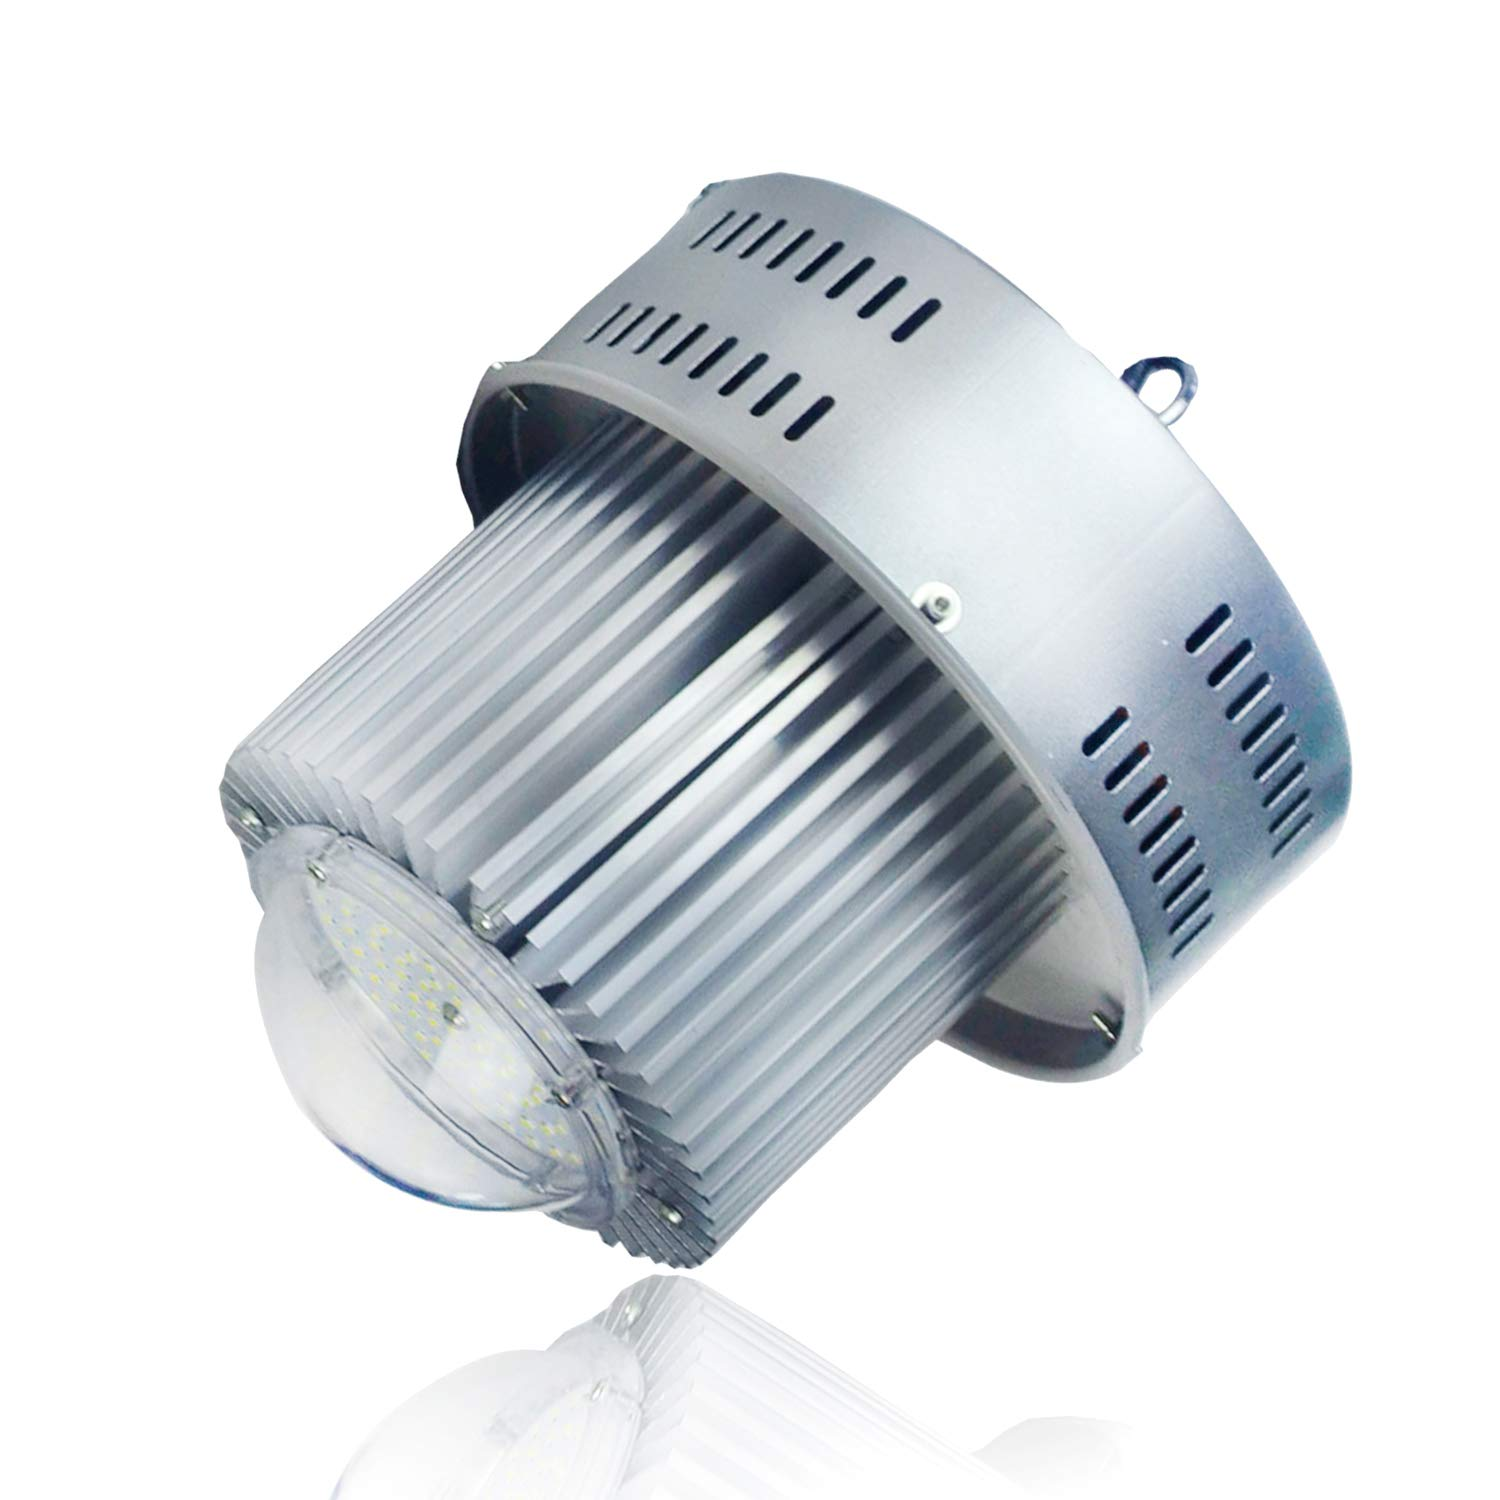 Buyleds 100W UFO High Bay Light LED Shop Lighting,Works from 110V to 277V,300W-350W HPS or MH Bulbs Equivalent,Great LED High Bay Lights for Garage Commercial Shopping Mall (100Watt)